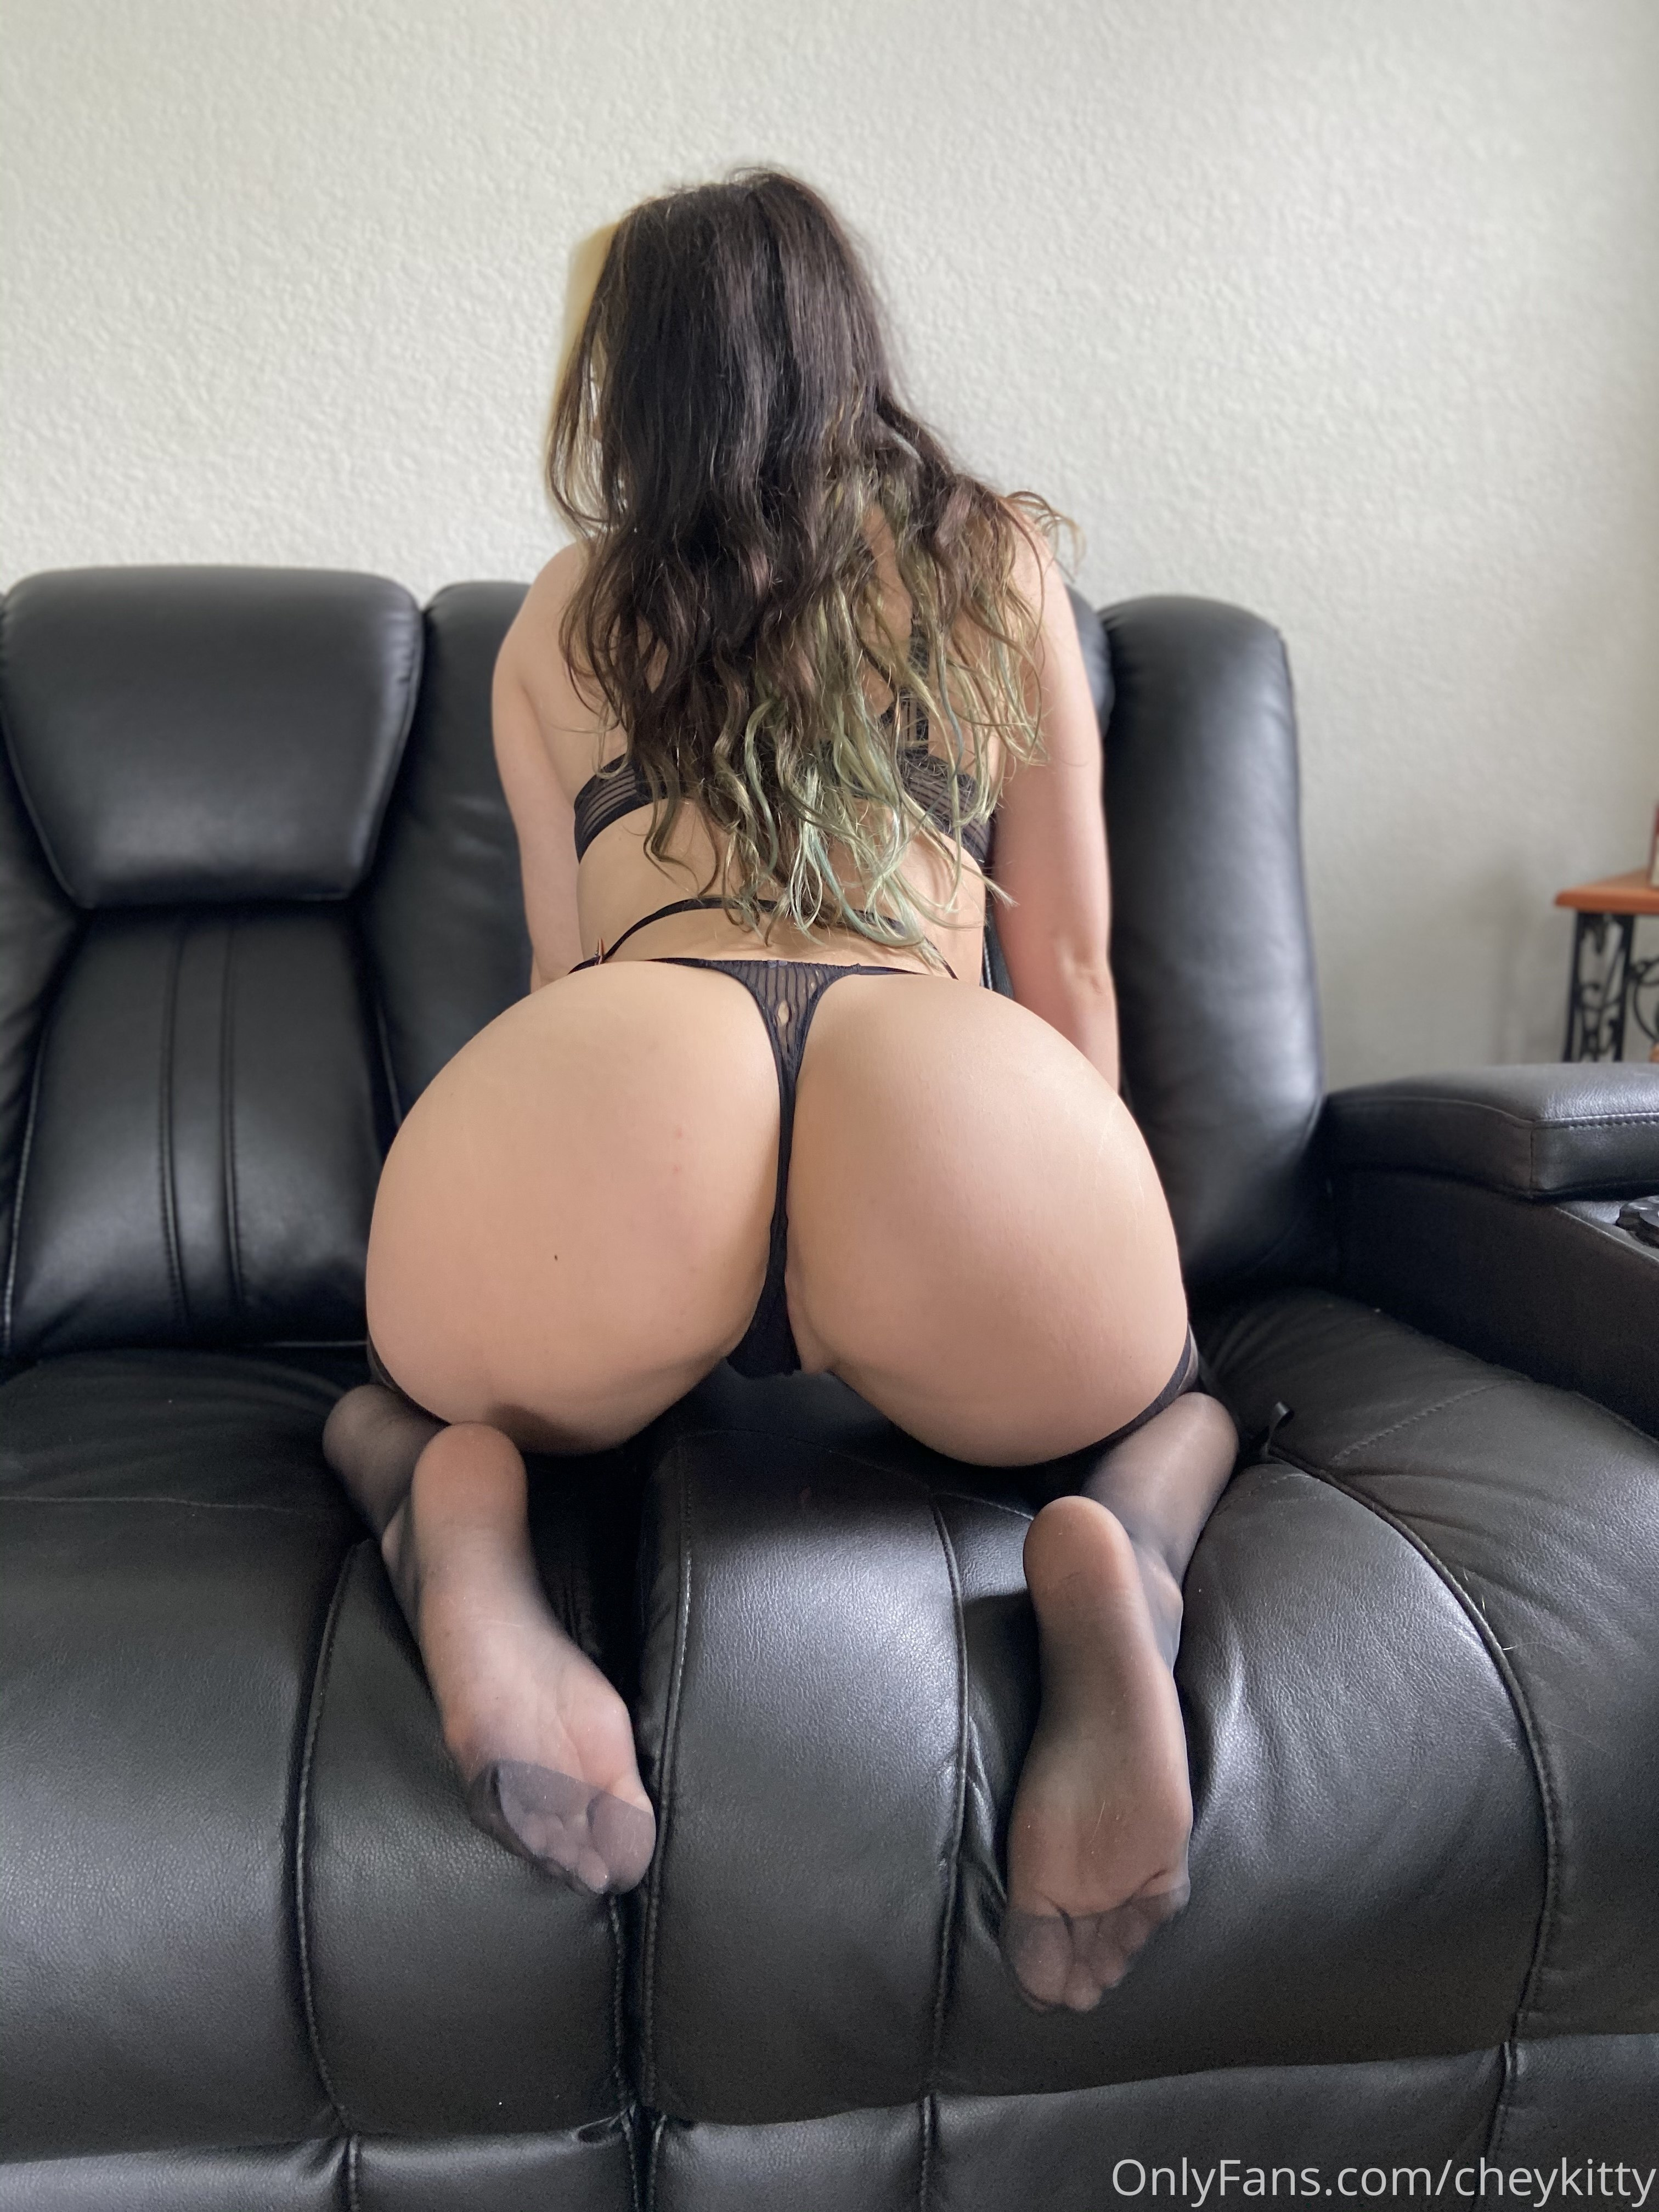 Cheykitty Onlyfans Leaked 0149